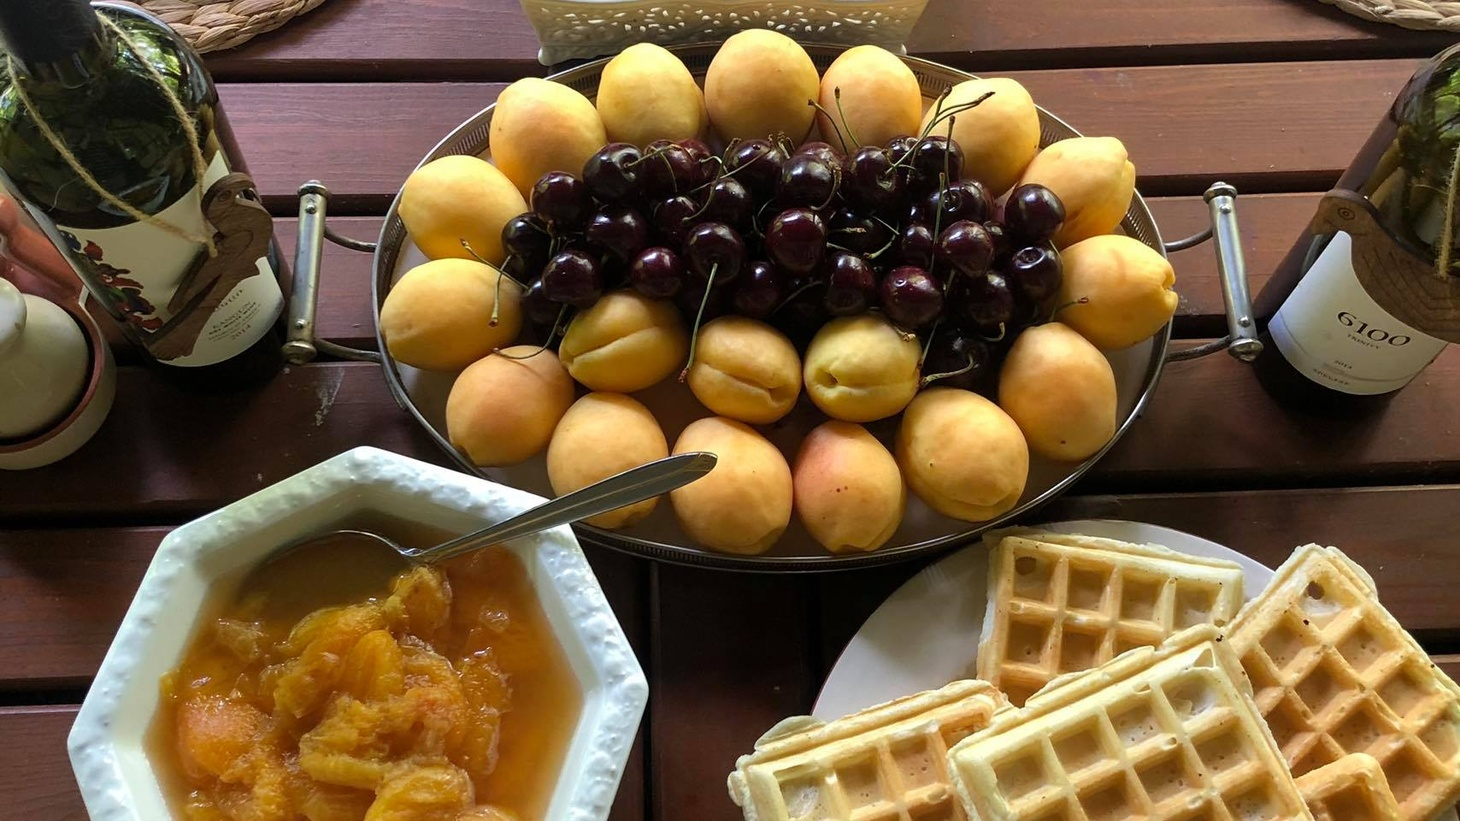 Orange in the Armenian flag represents the apricot, a significant fruit to the culture.